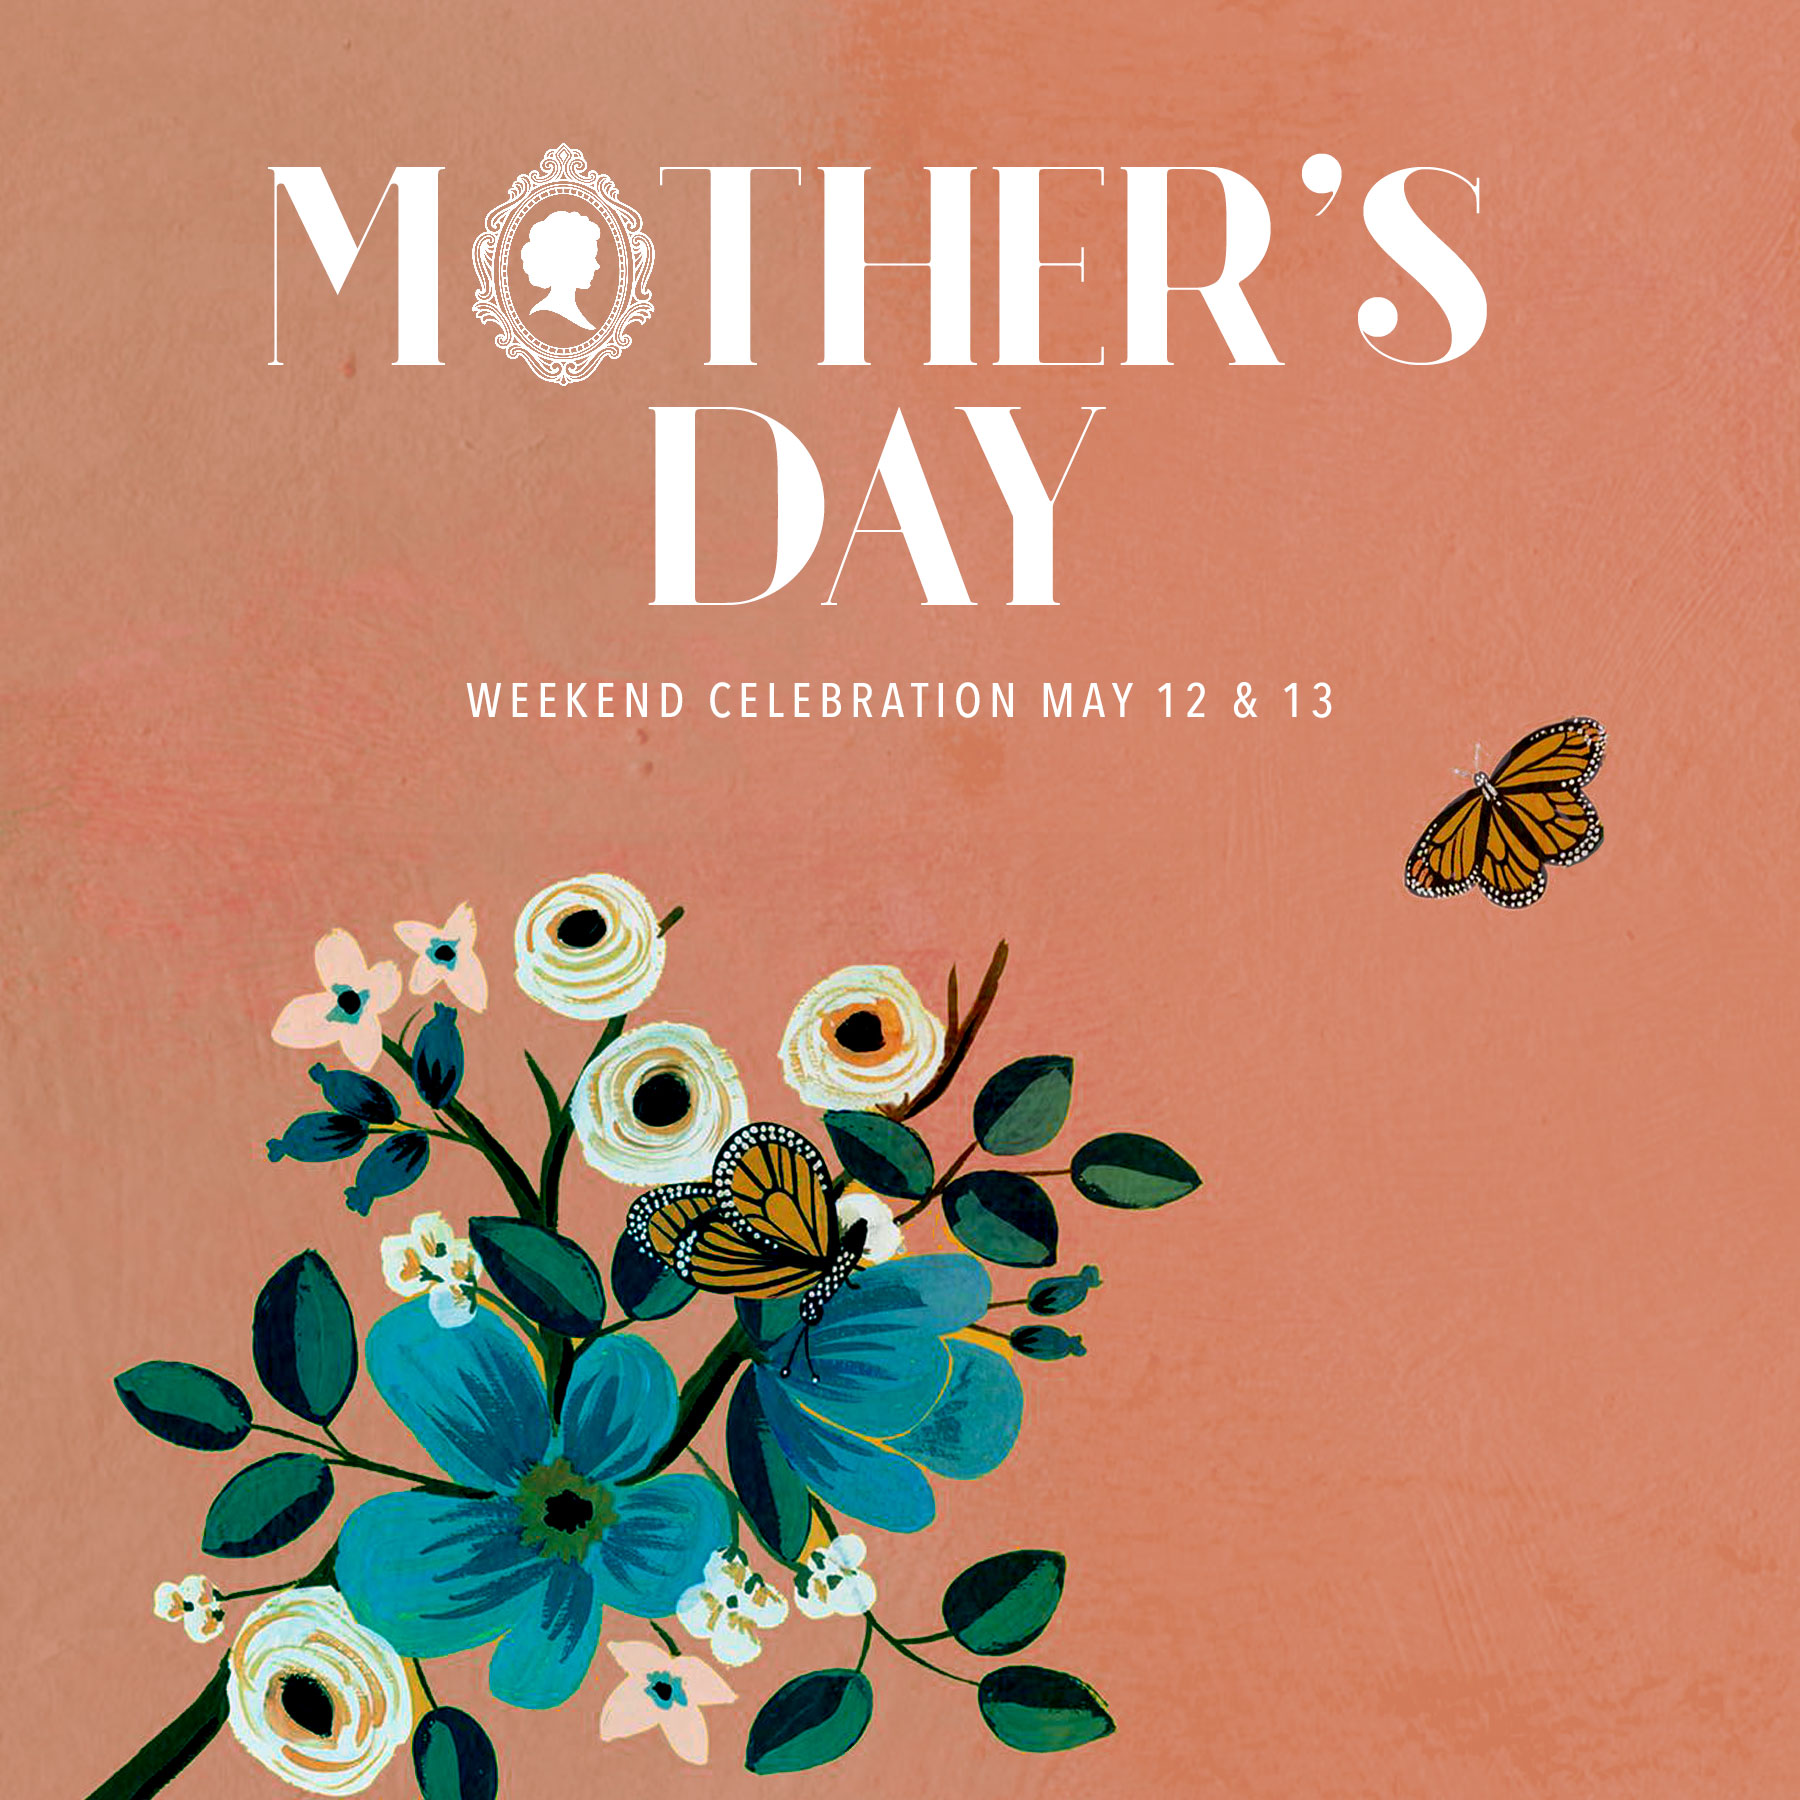 Mother's Day Celebration Weekend May 12 & 13